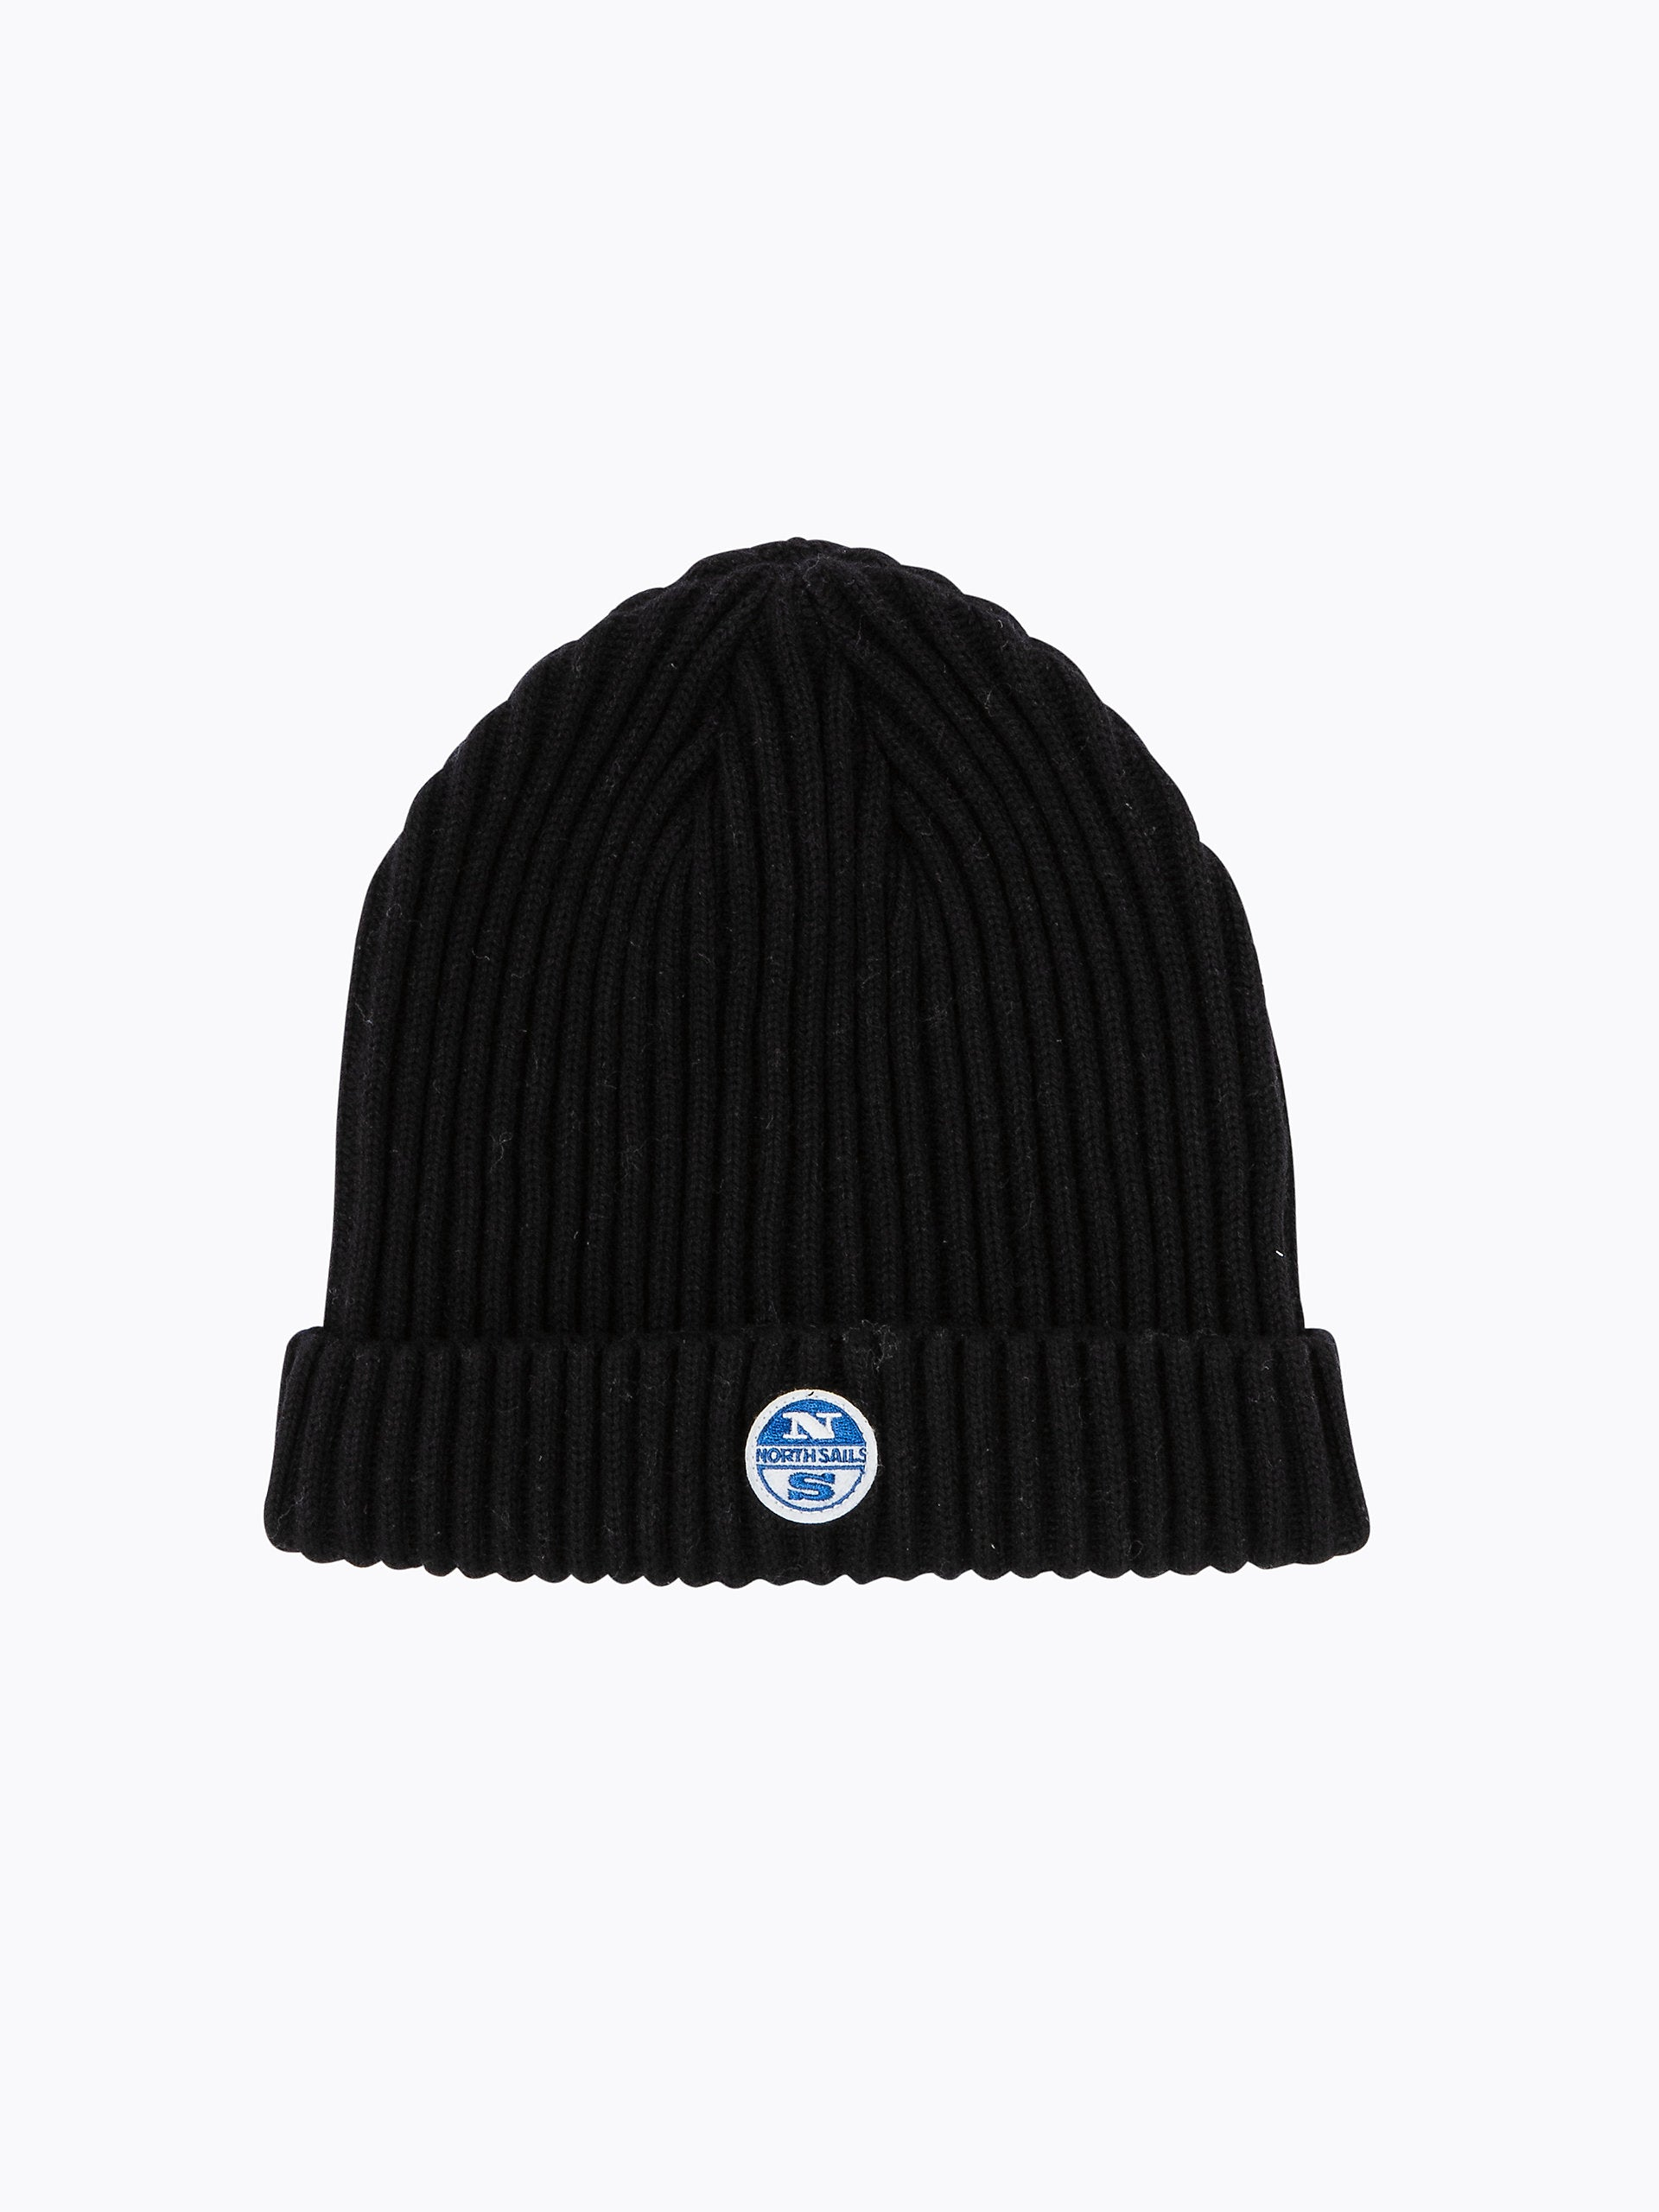 North Sails Woolly Beanie Hat Black